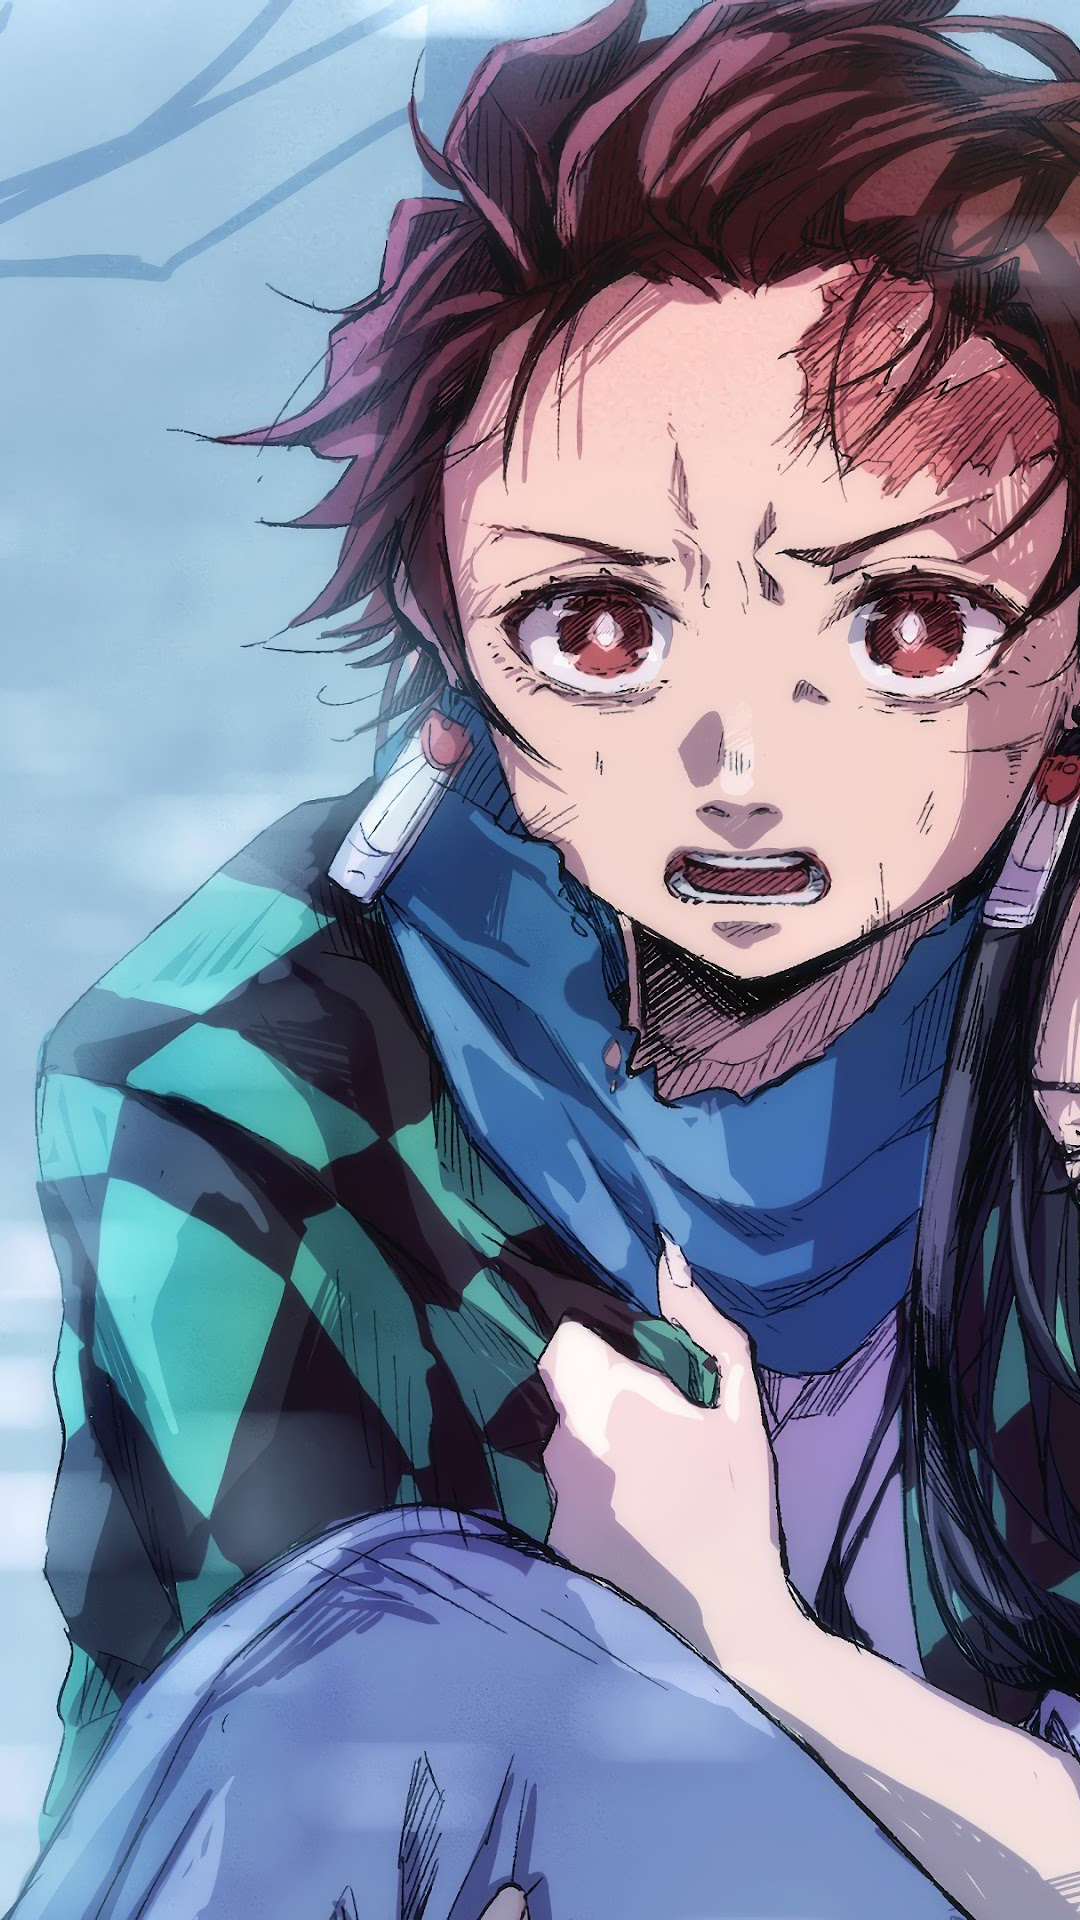 Download Kimetsu No Yaiba S10 Wallpaper Cikimm Com